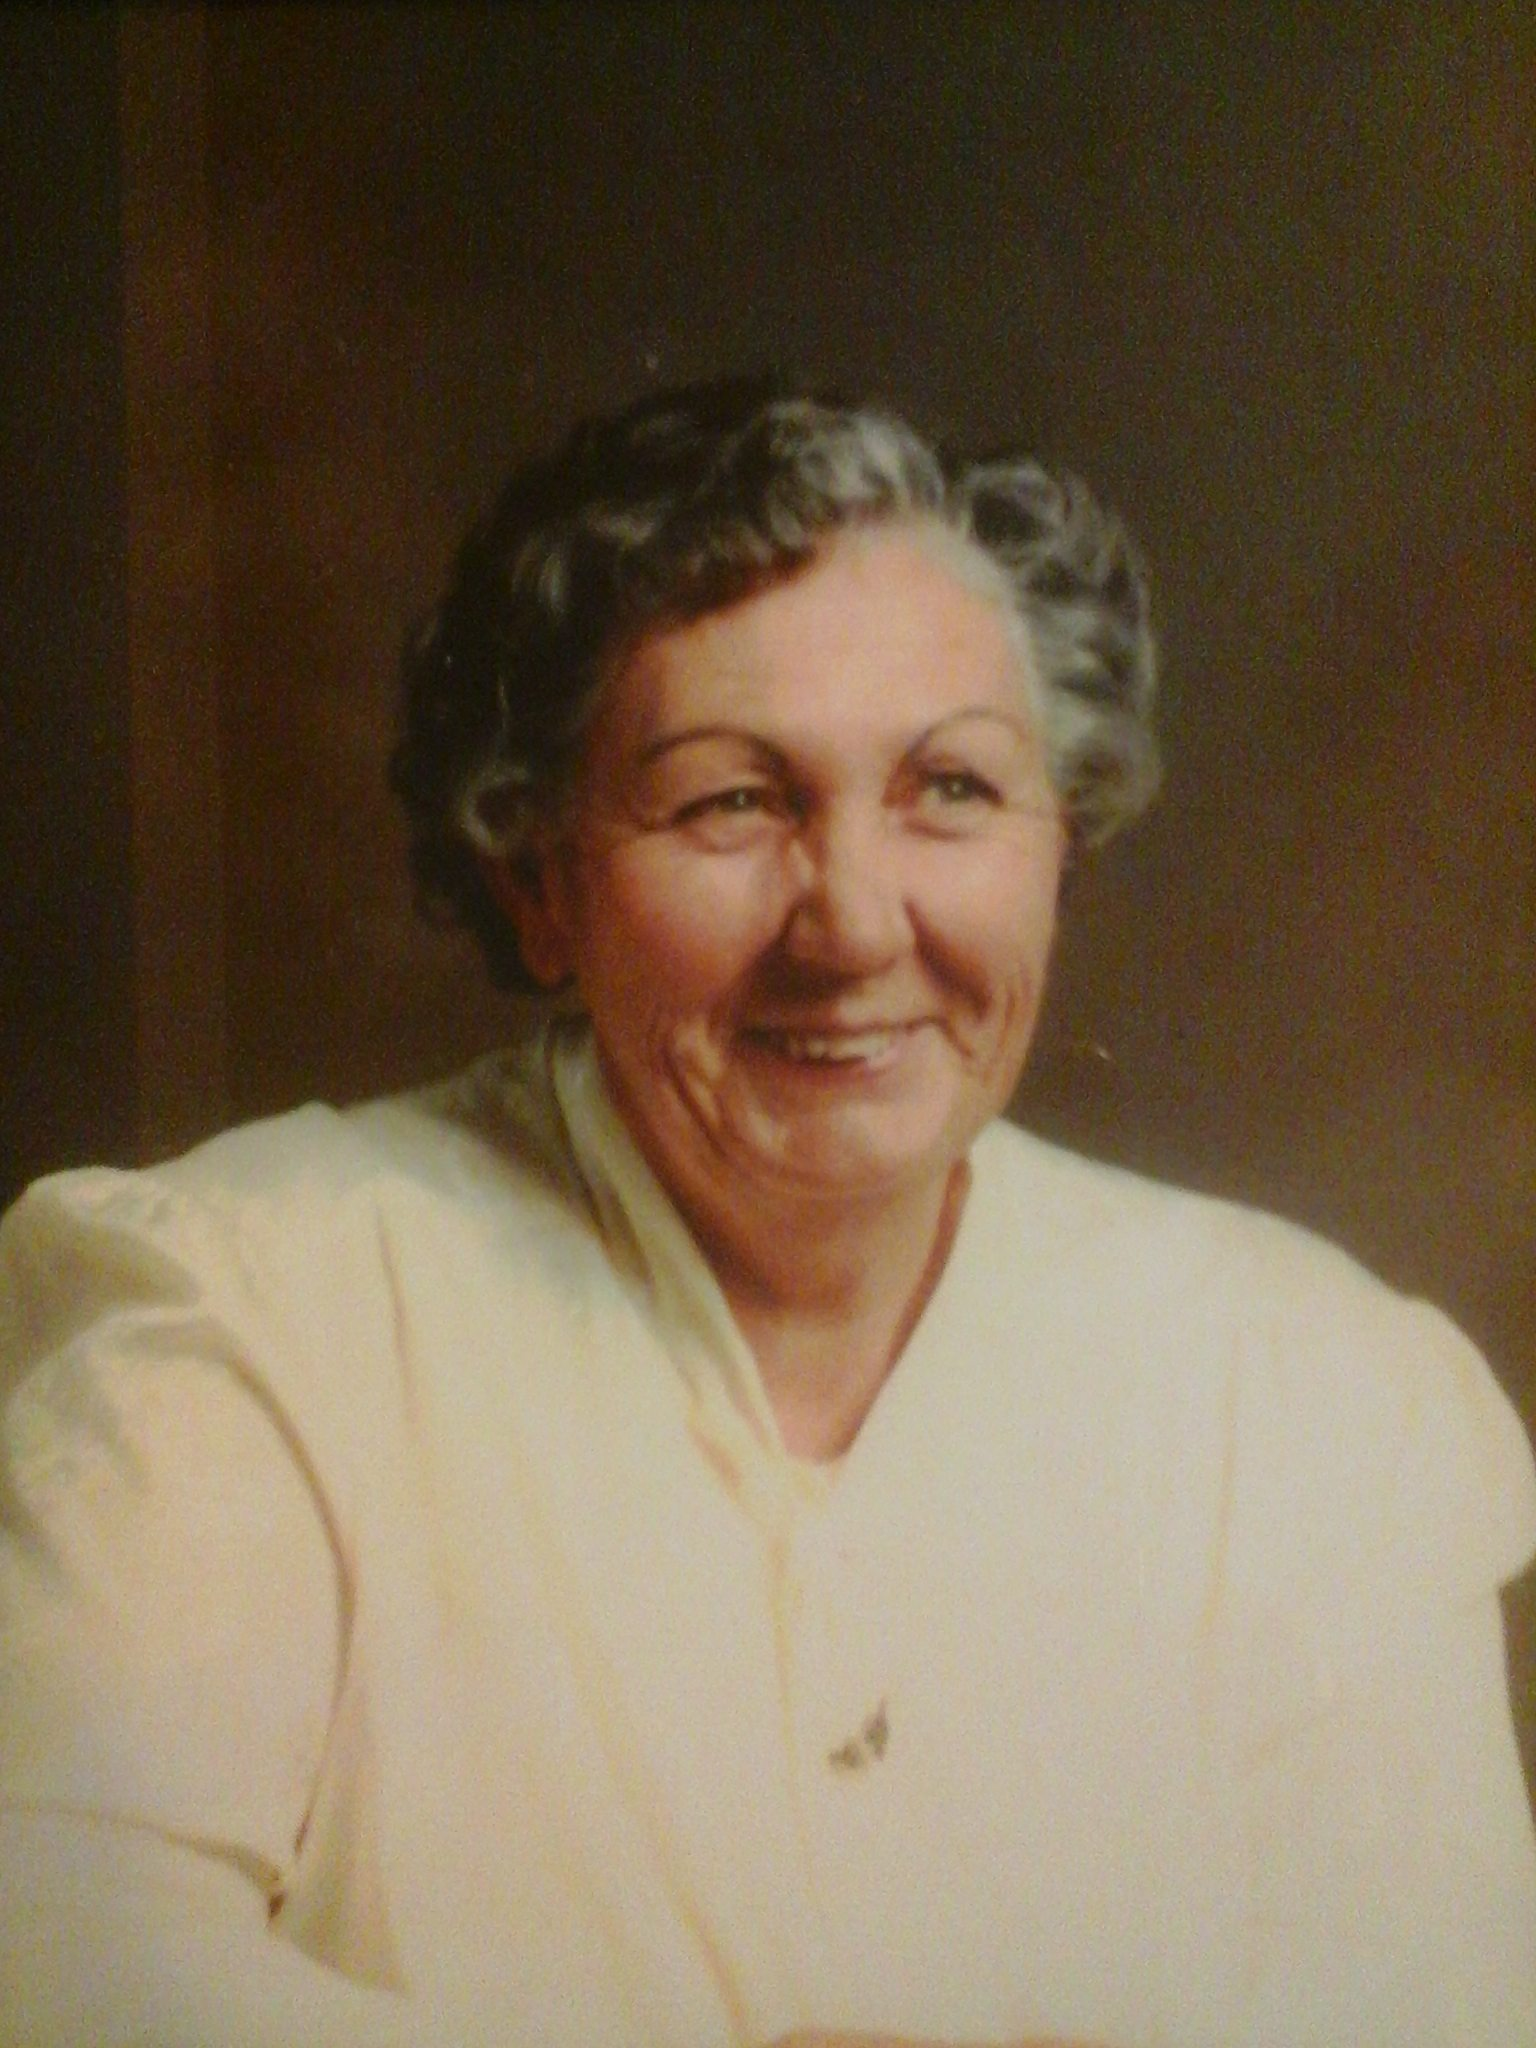 Melba June (Parsons) Gentry